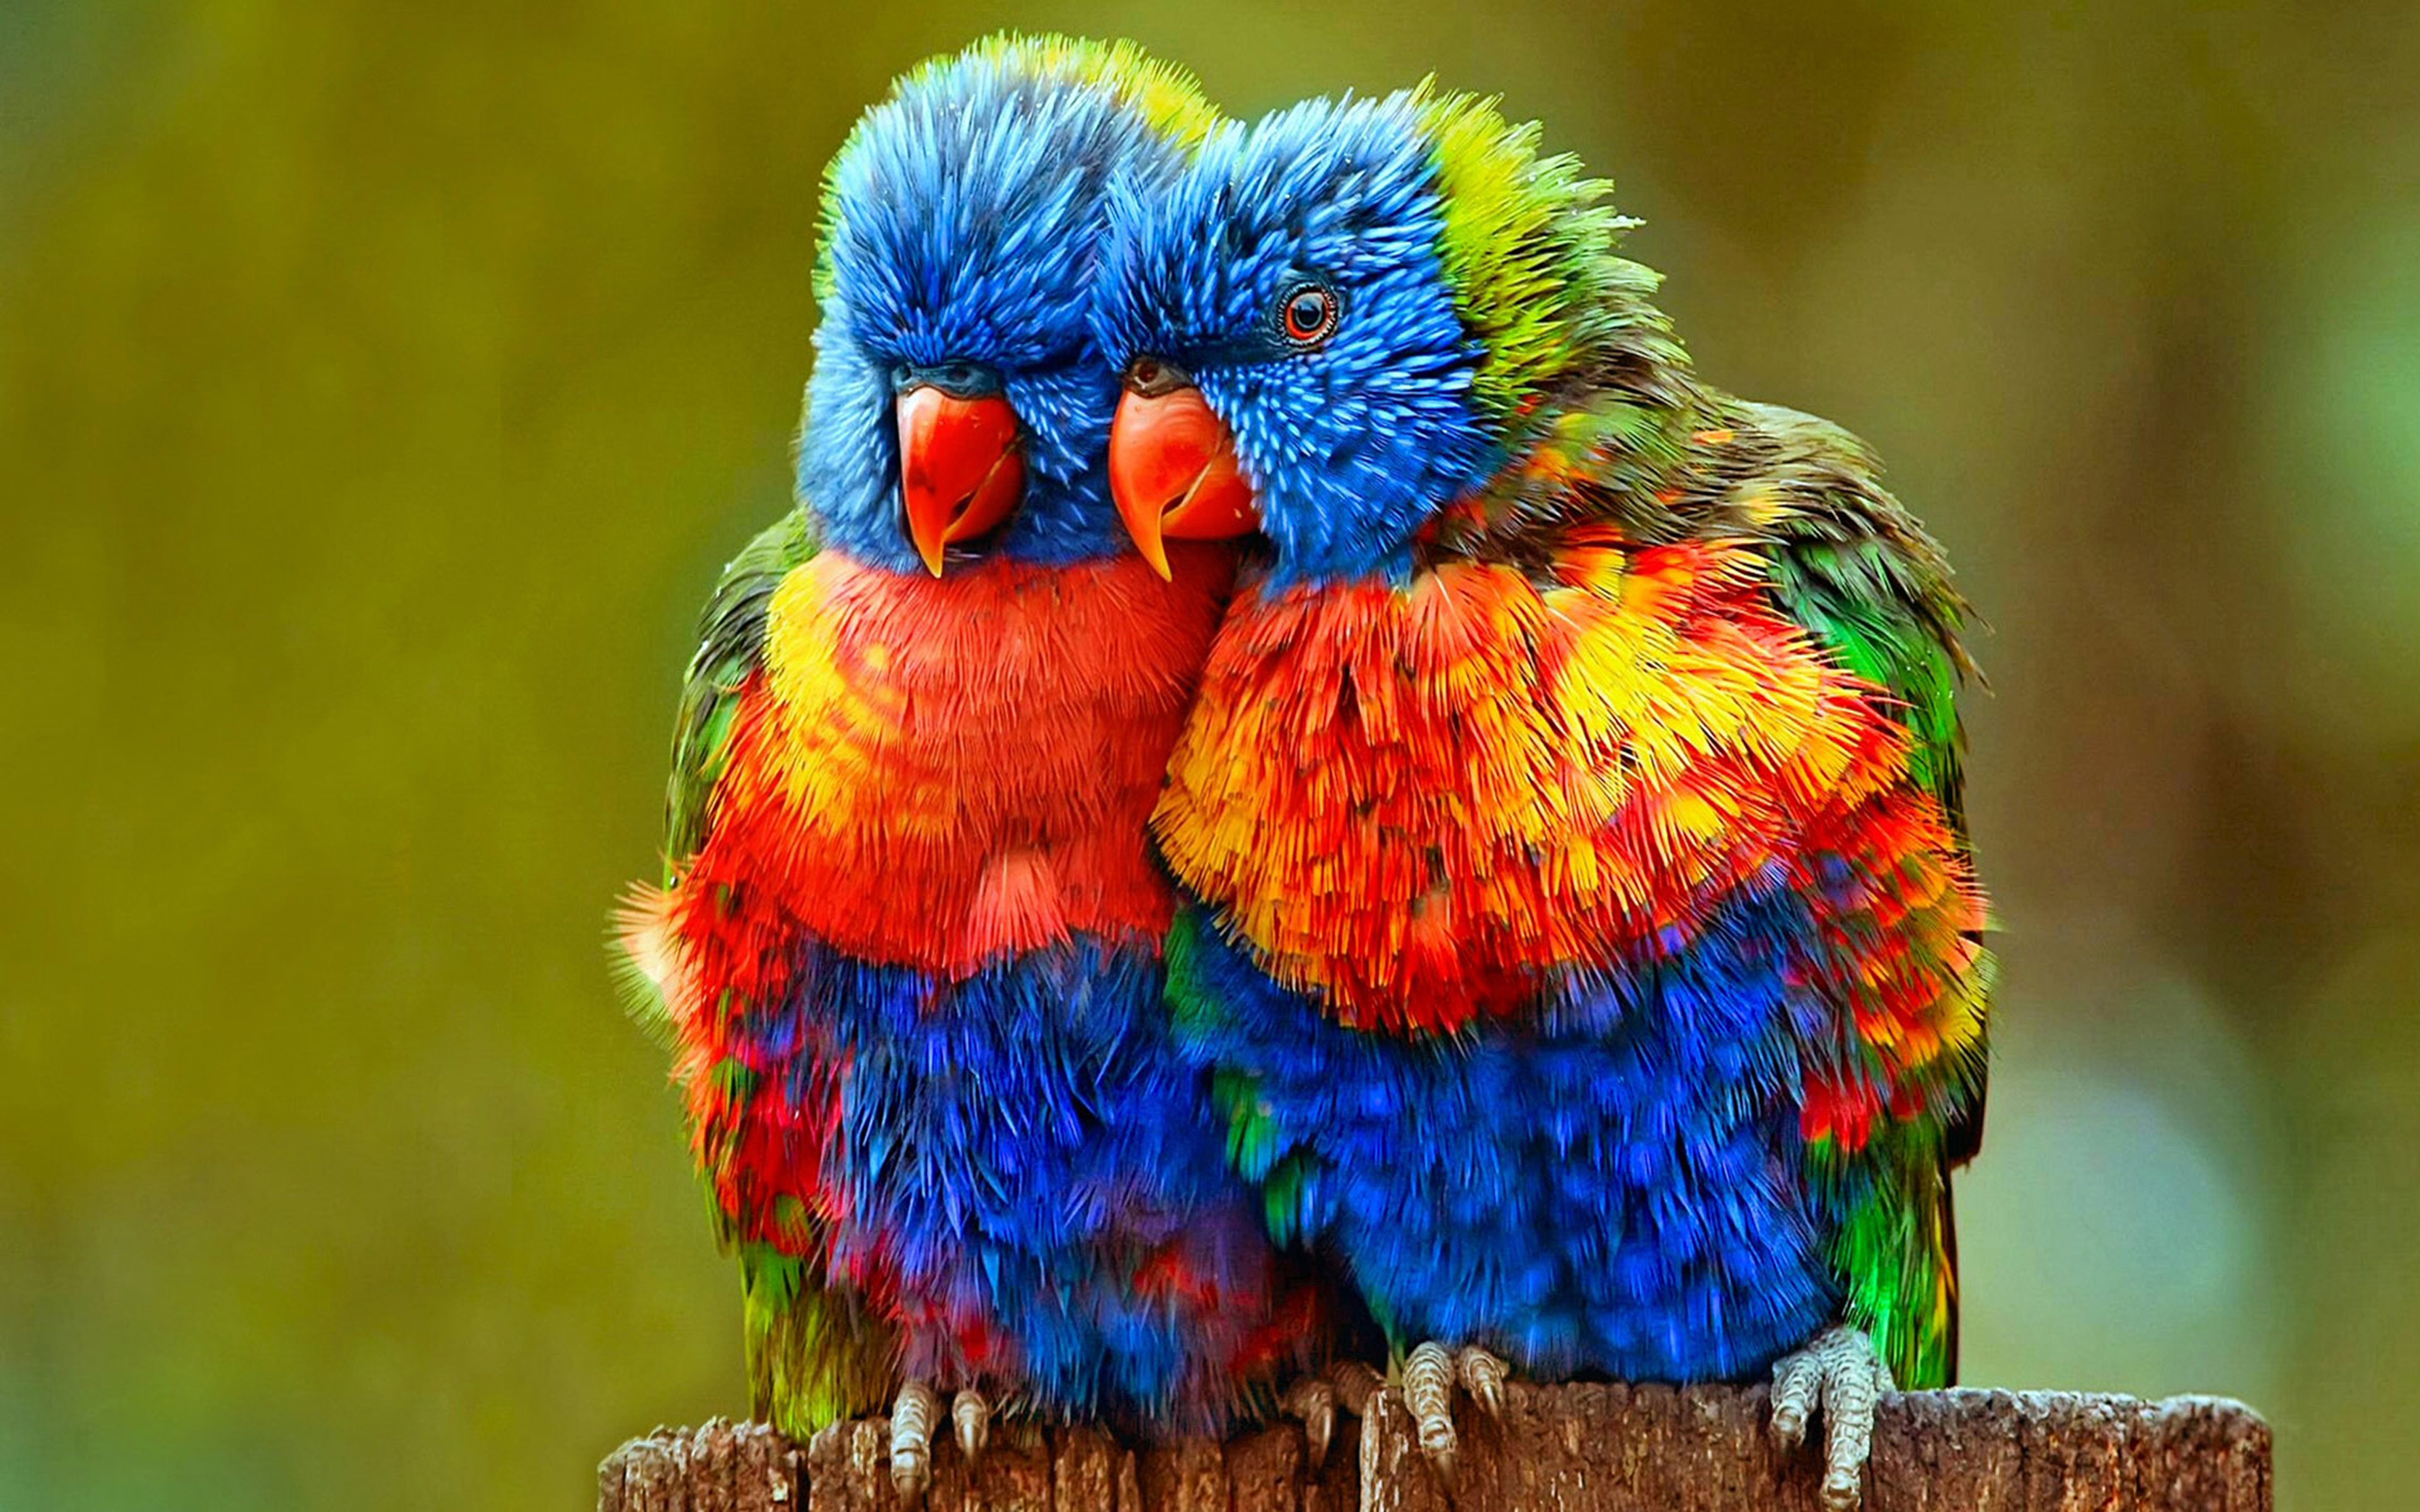 Singapore Wallpaper Hd Small Colorful Parrots Wallpapers Hd Wallpapers13 Com